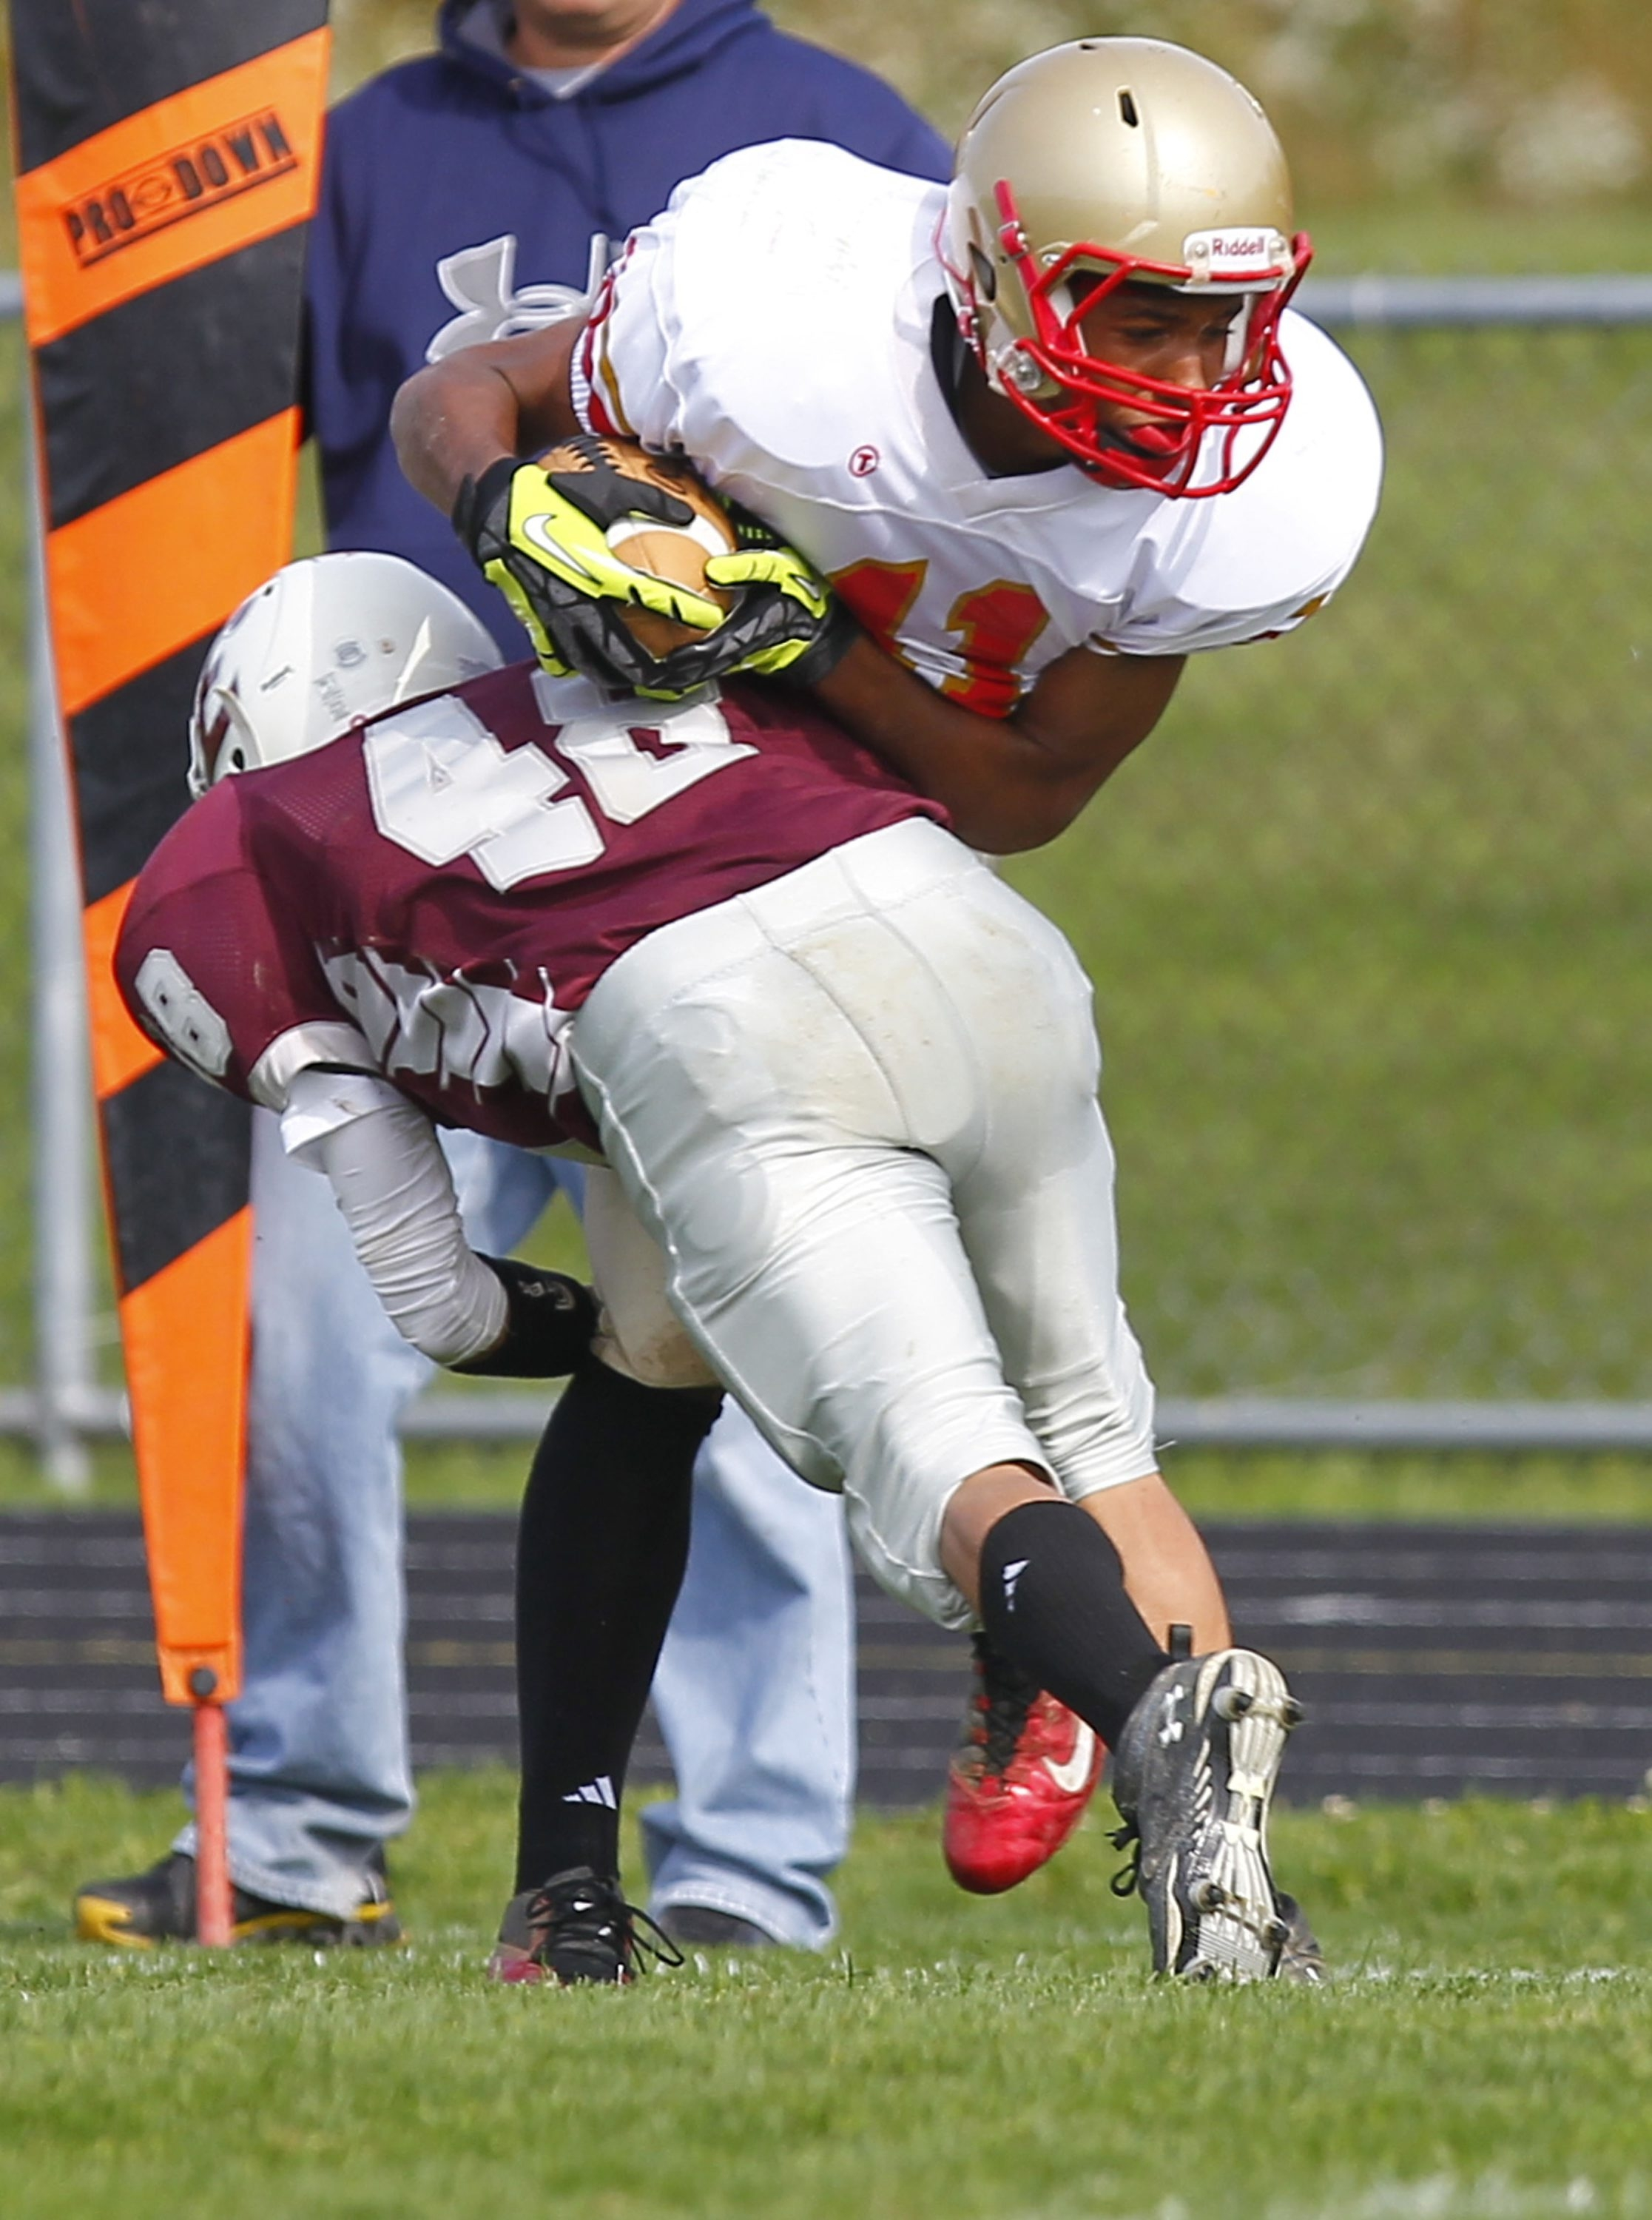 John Hickey / Buffalo News    Olean receiver Wil Bathurst absorbs a hit by Eden's Kevin Delia during the Huskies' 28-14 win at No. 9 small school Eden.